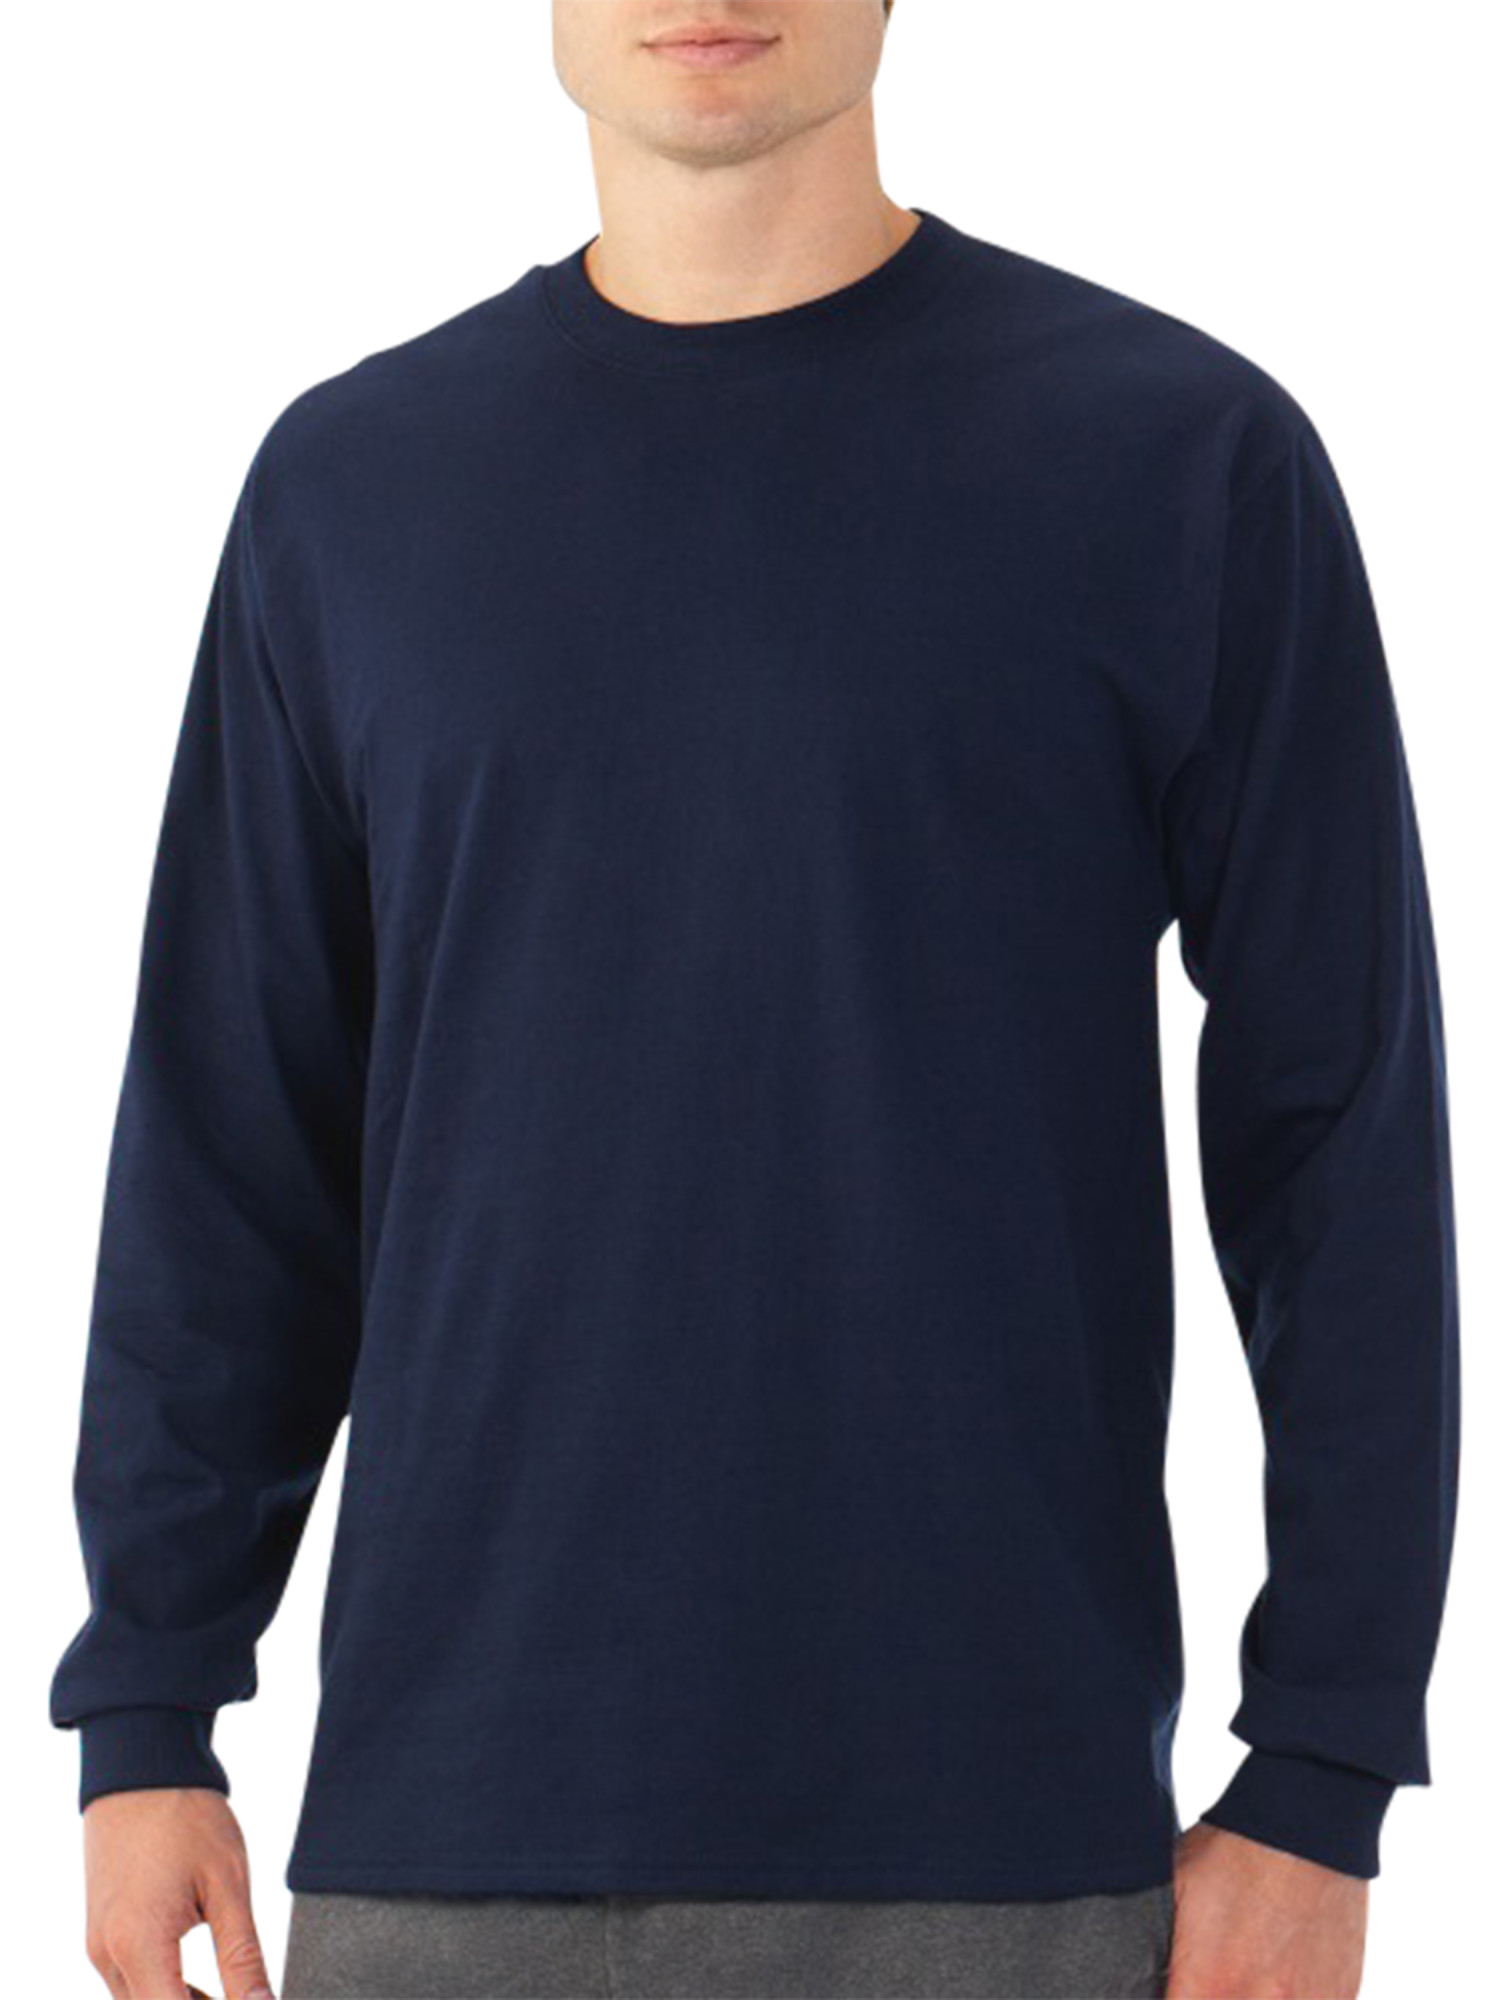 Platinum Eversoft Men's Long Sleeve Crew T Shirt with Rib Cuffs, up